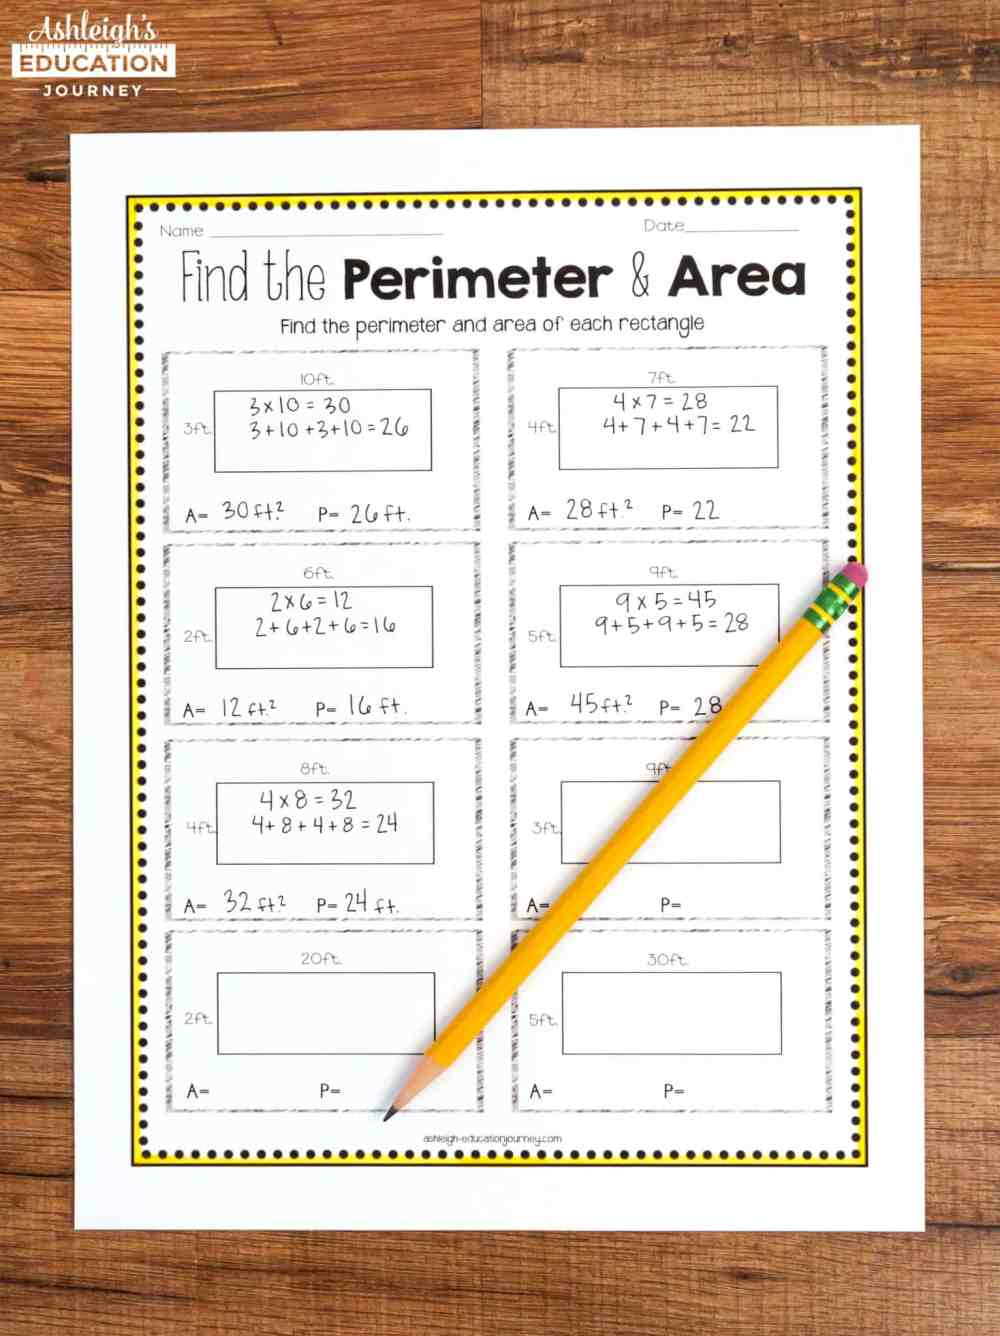 medium resolution of Teaching Area and Perimeter - Ashleigh's Education Journey